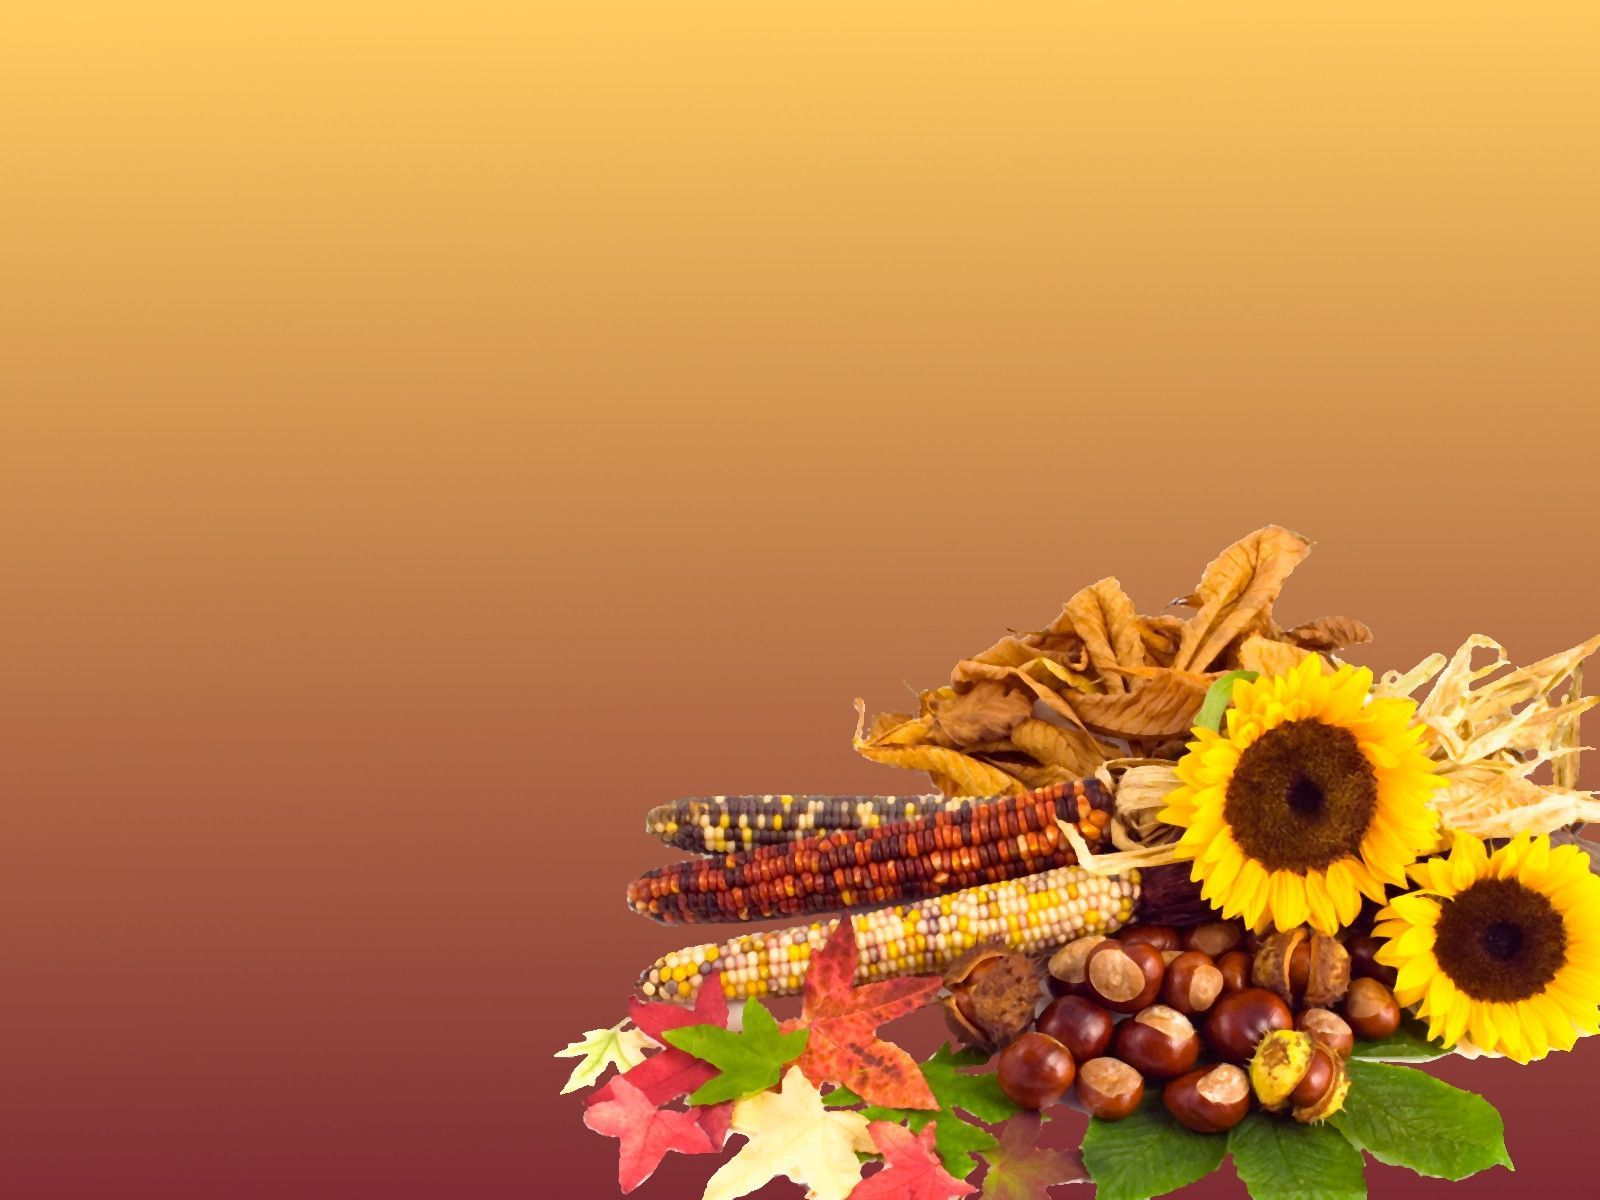 thanksgiving desktop wallpapers backgrounds   SF Wallpaper 1600x1200